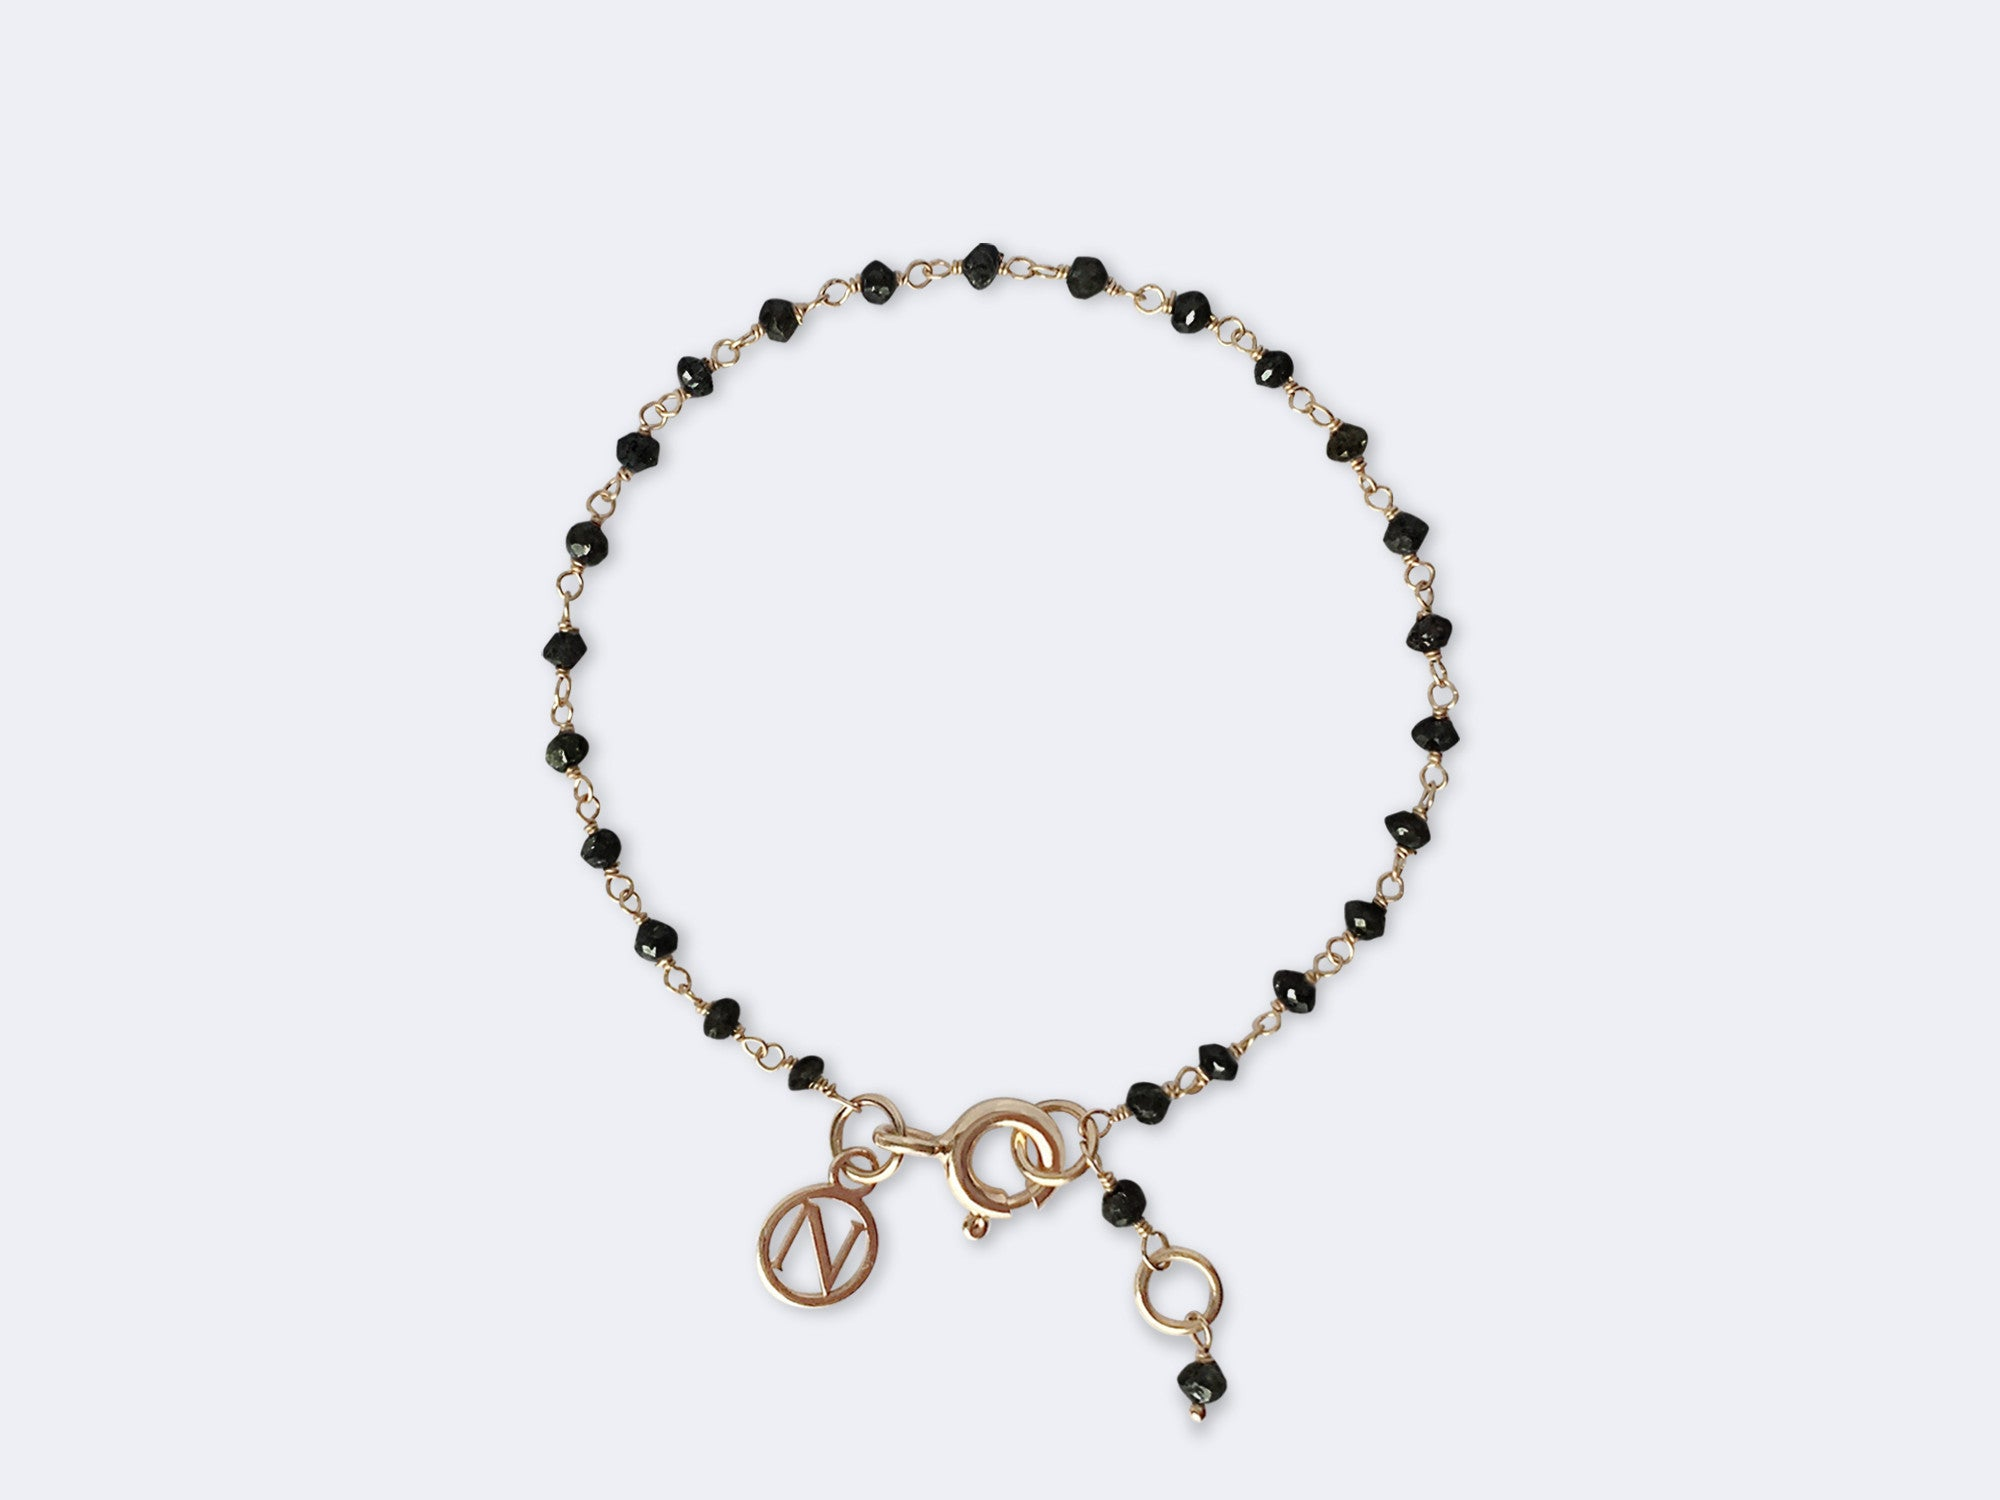 bracelet diamond bead pav david bracelets pave jewelry enlarged black products spiritual yurman